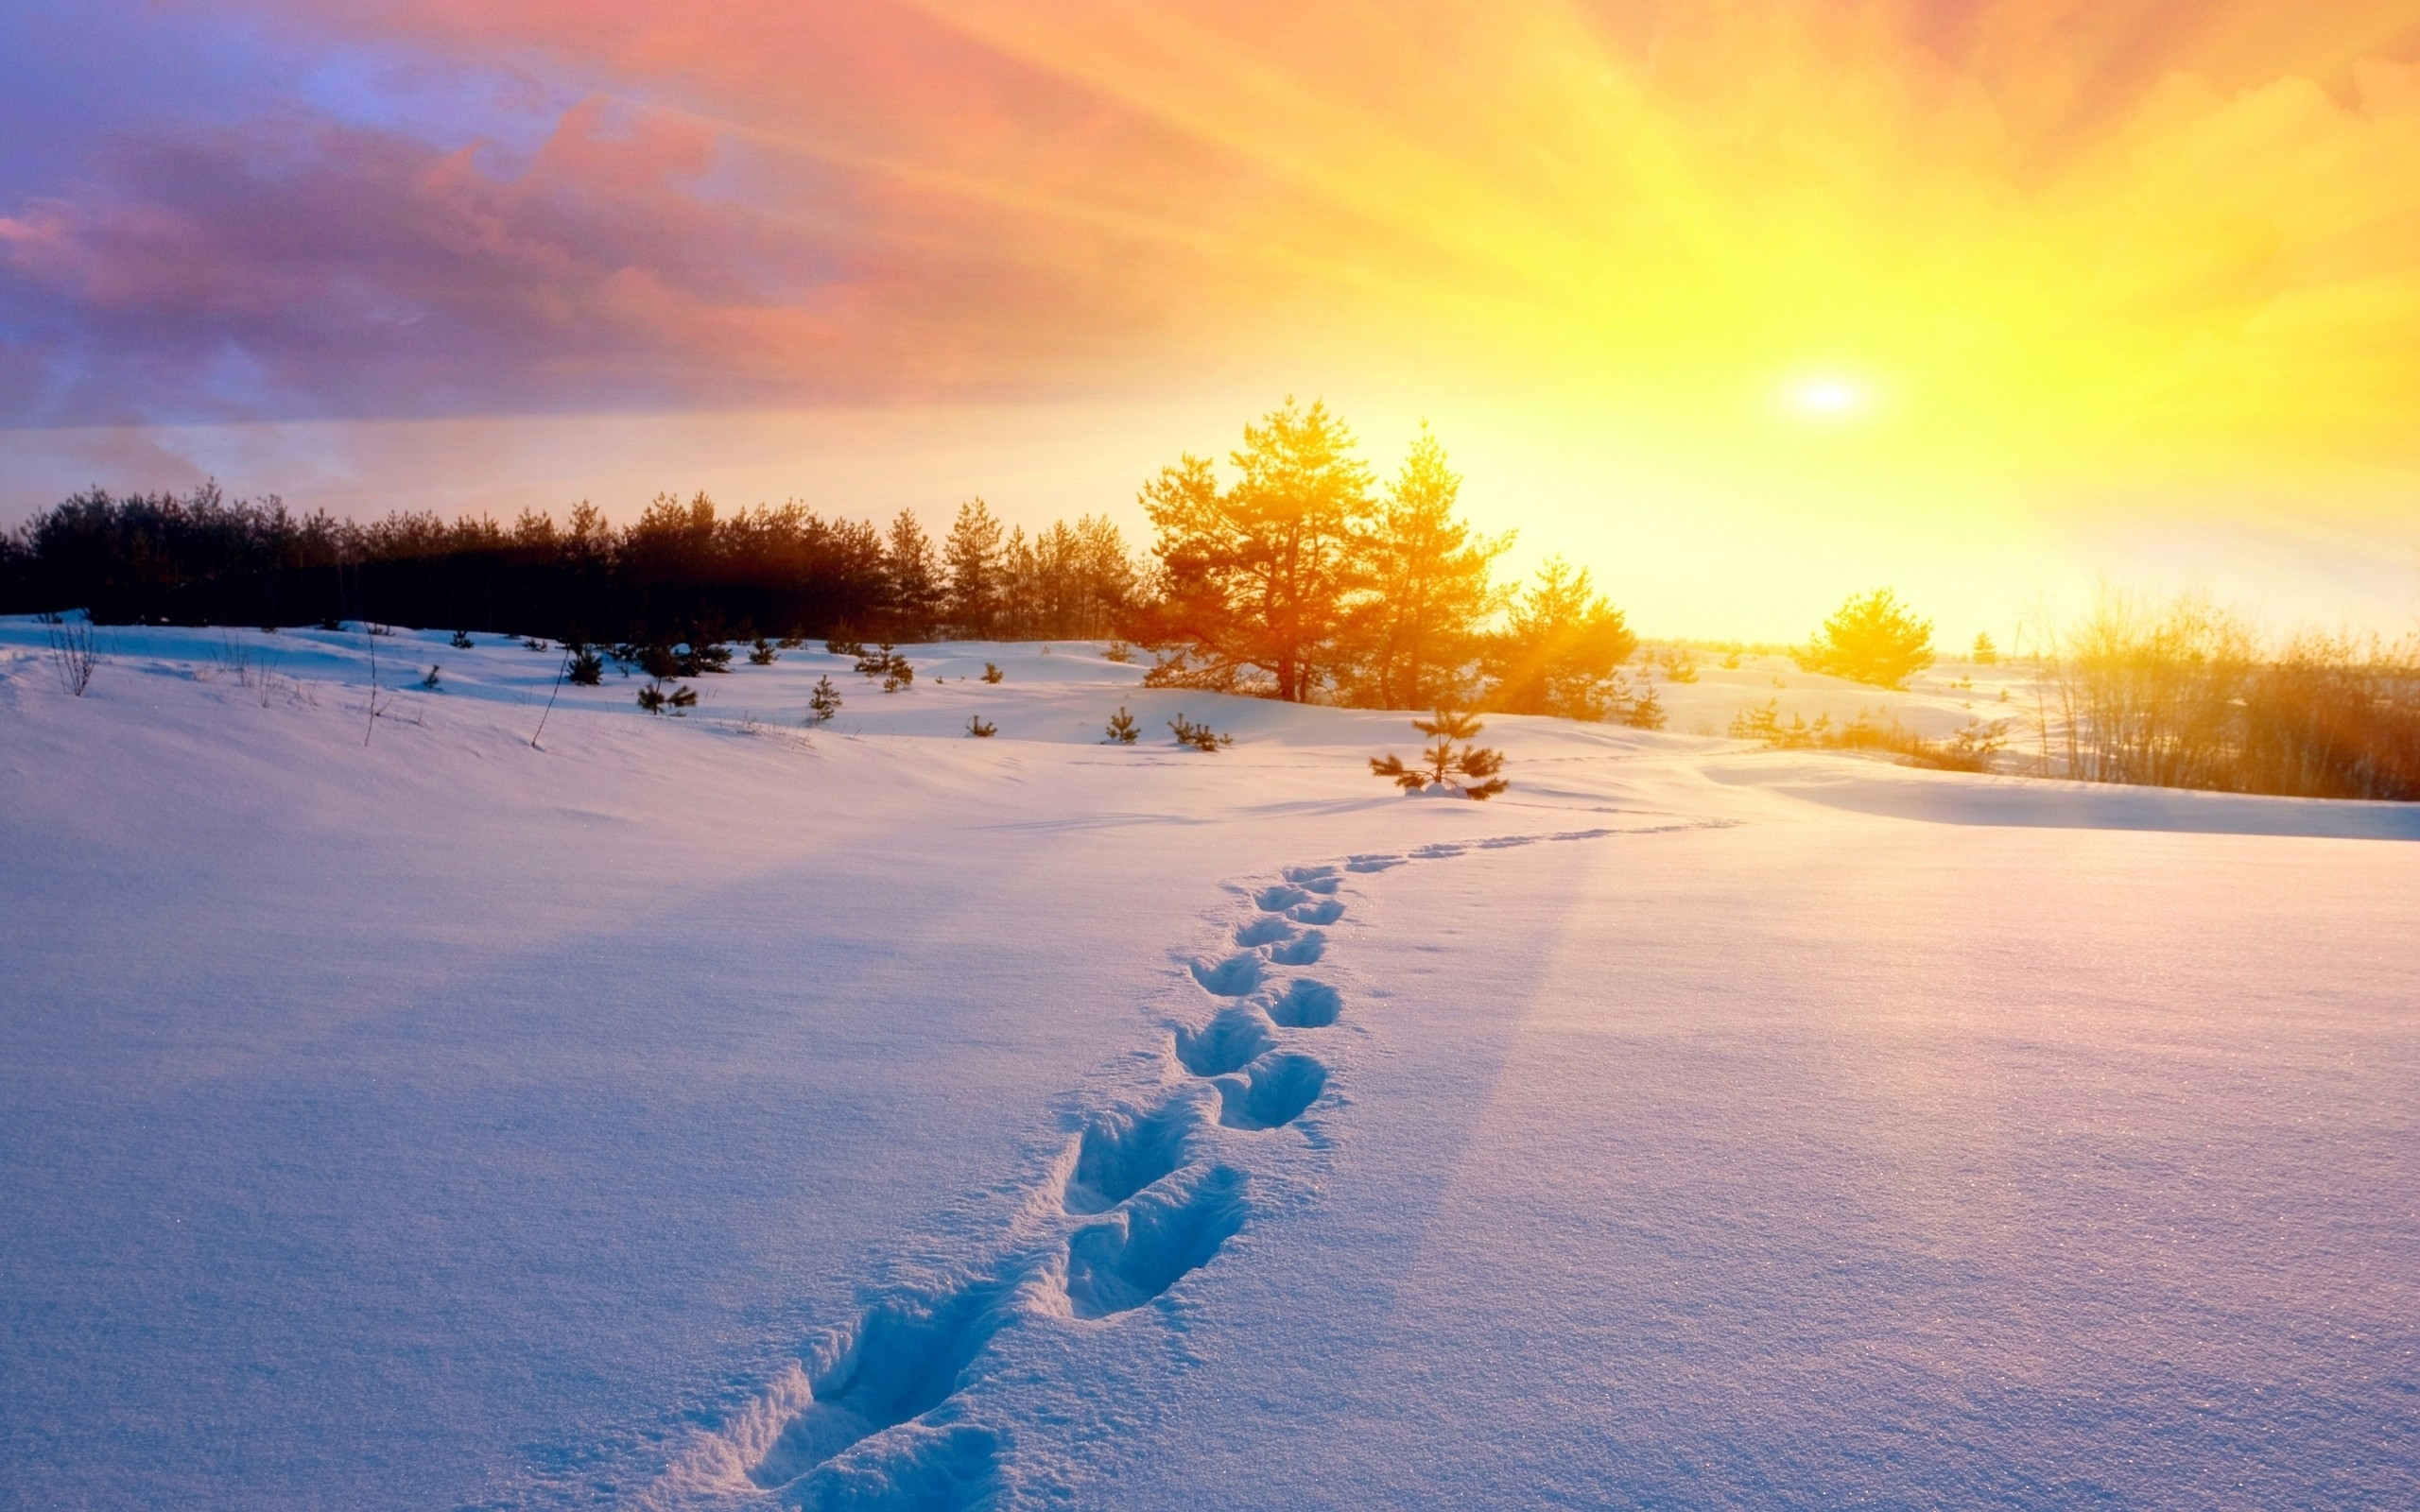 Sun Trees Snow & Foot Step Wallpapers